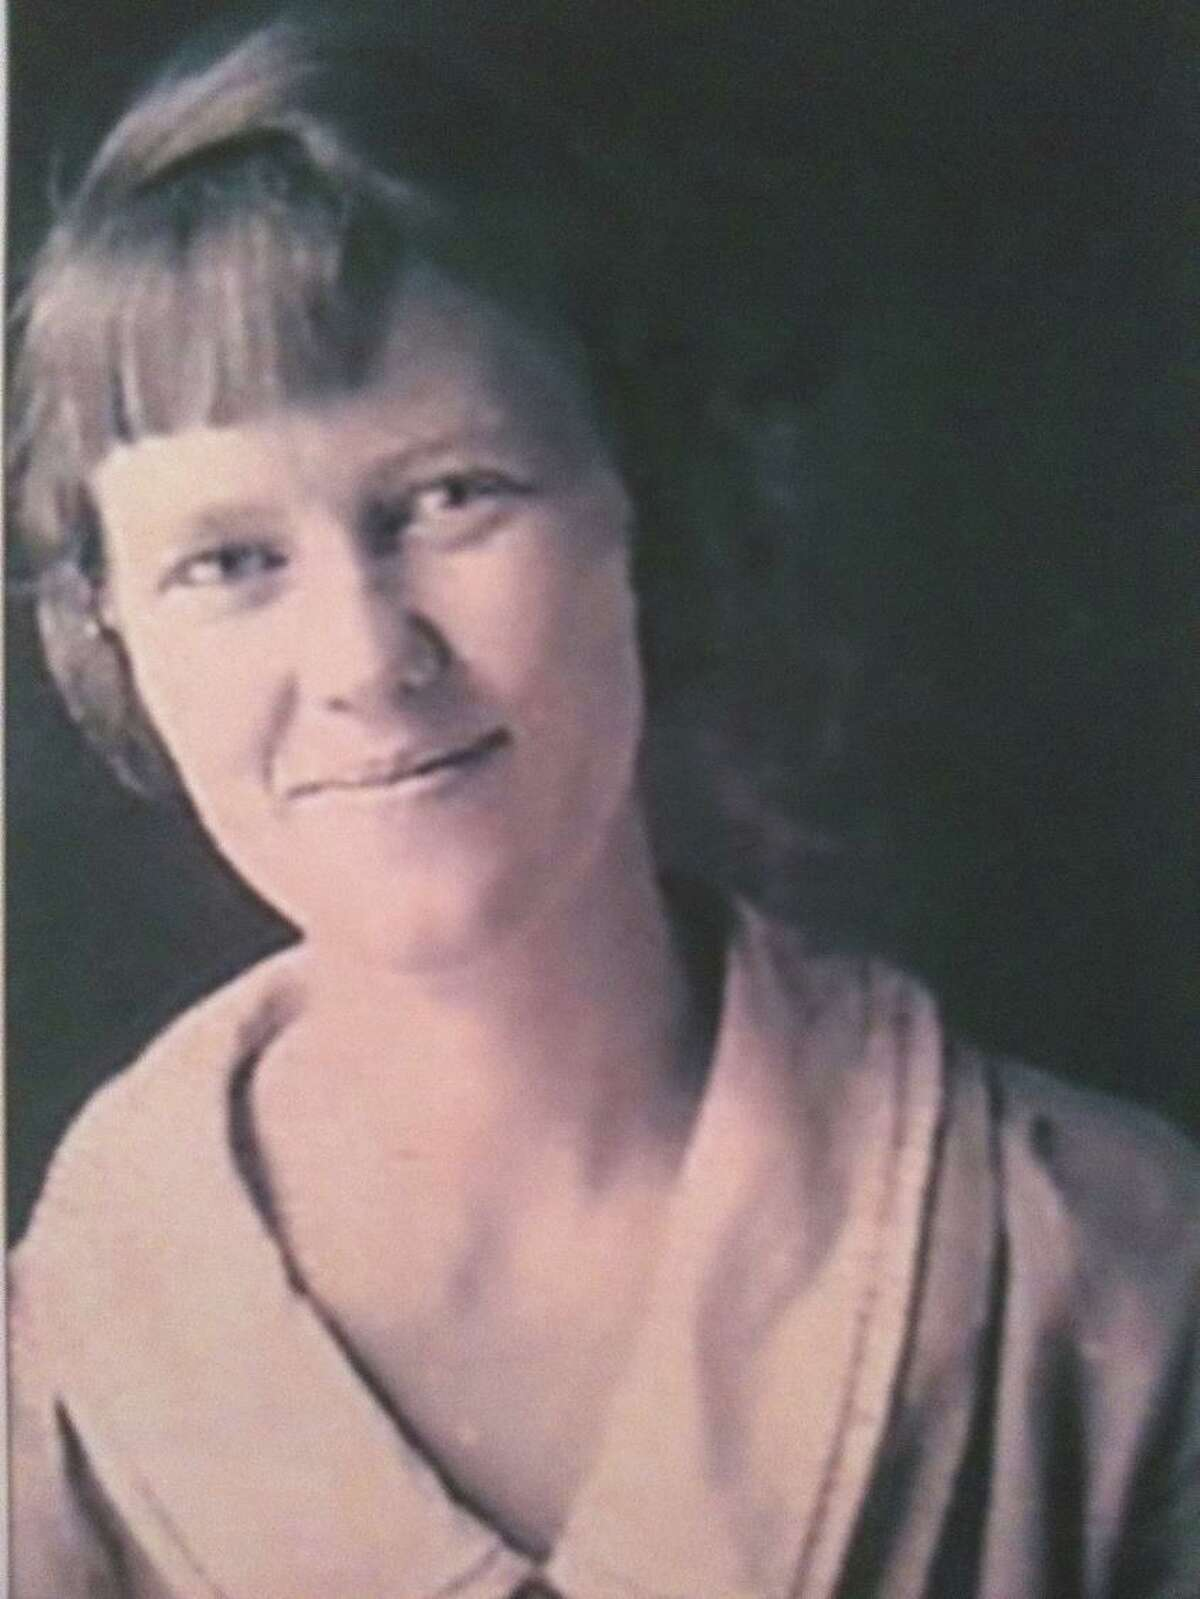 Mabel Griffith Legg, who encouraged Billy Joe Shaver's writing talent at La Vega High School in Waco, starting her teaching career as a 16-year-old at a one-room school near Palestine.